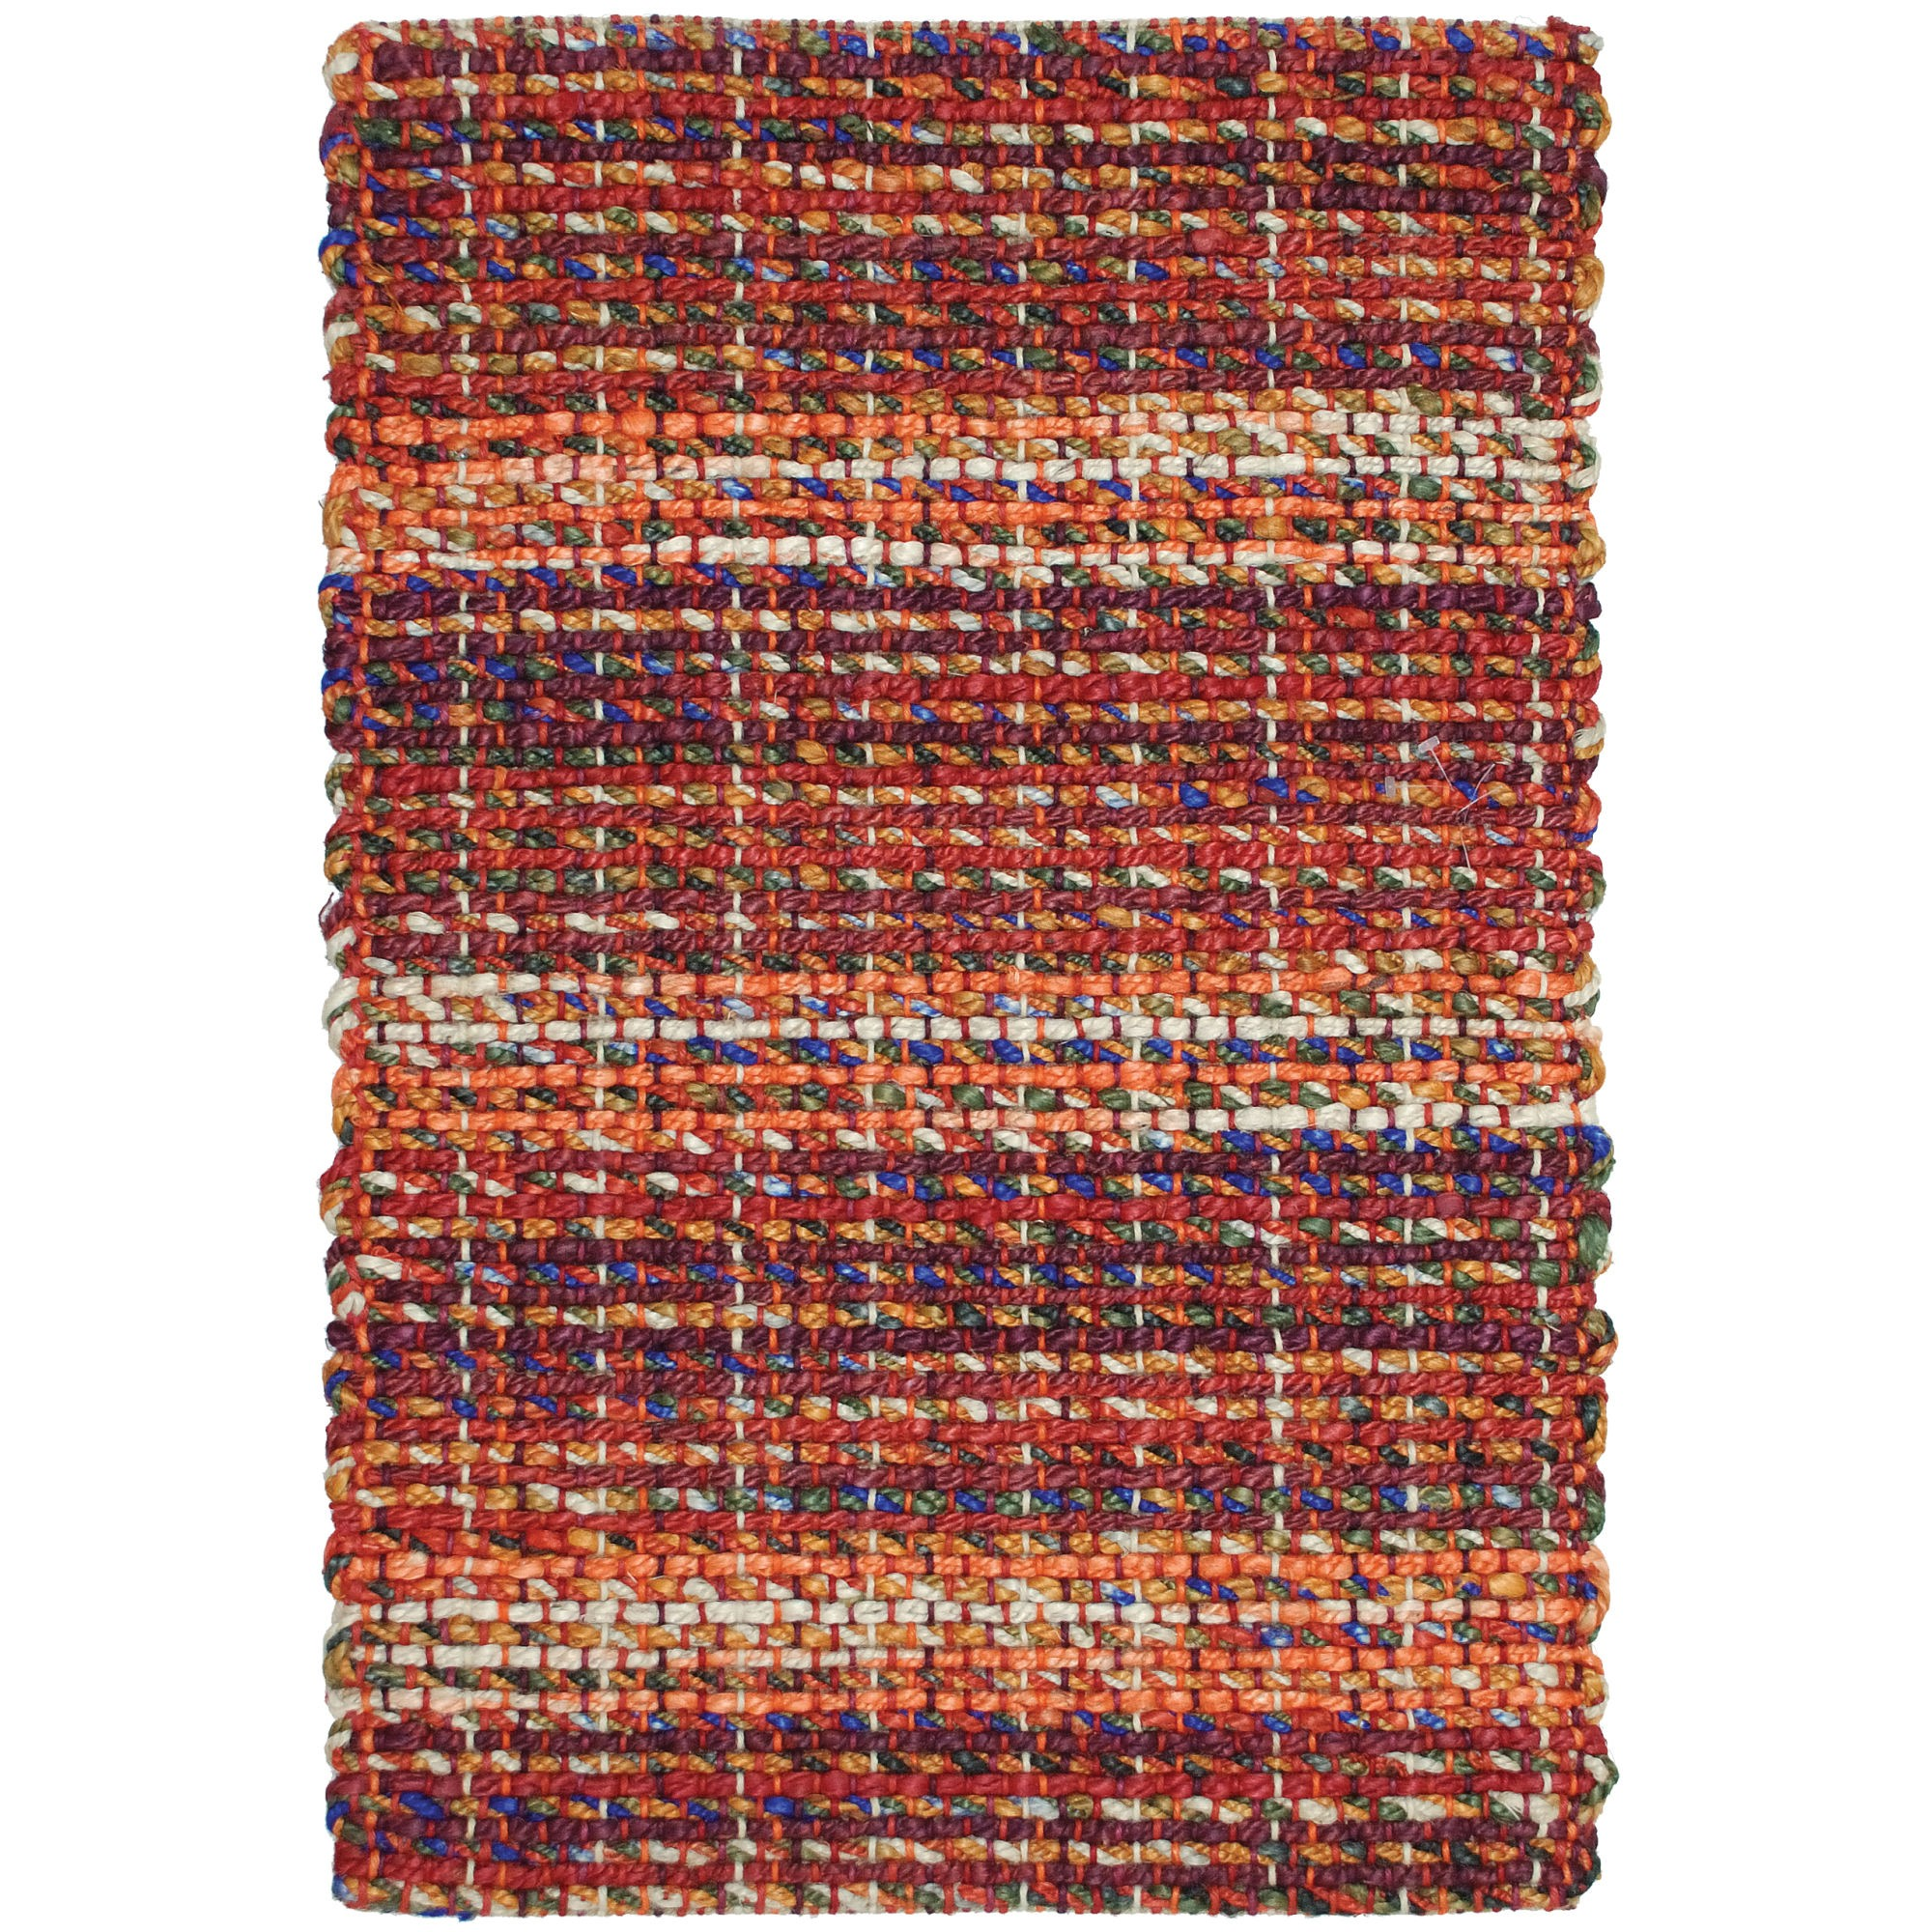 Cozy braided rug for floorings and rugs ideas with round braided rugs and braided area rugs